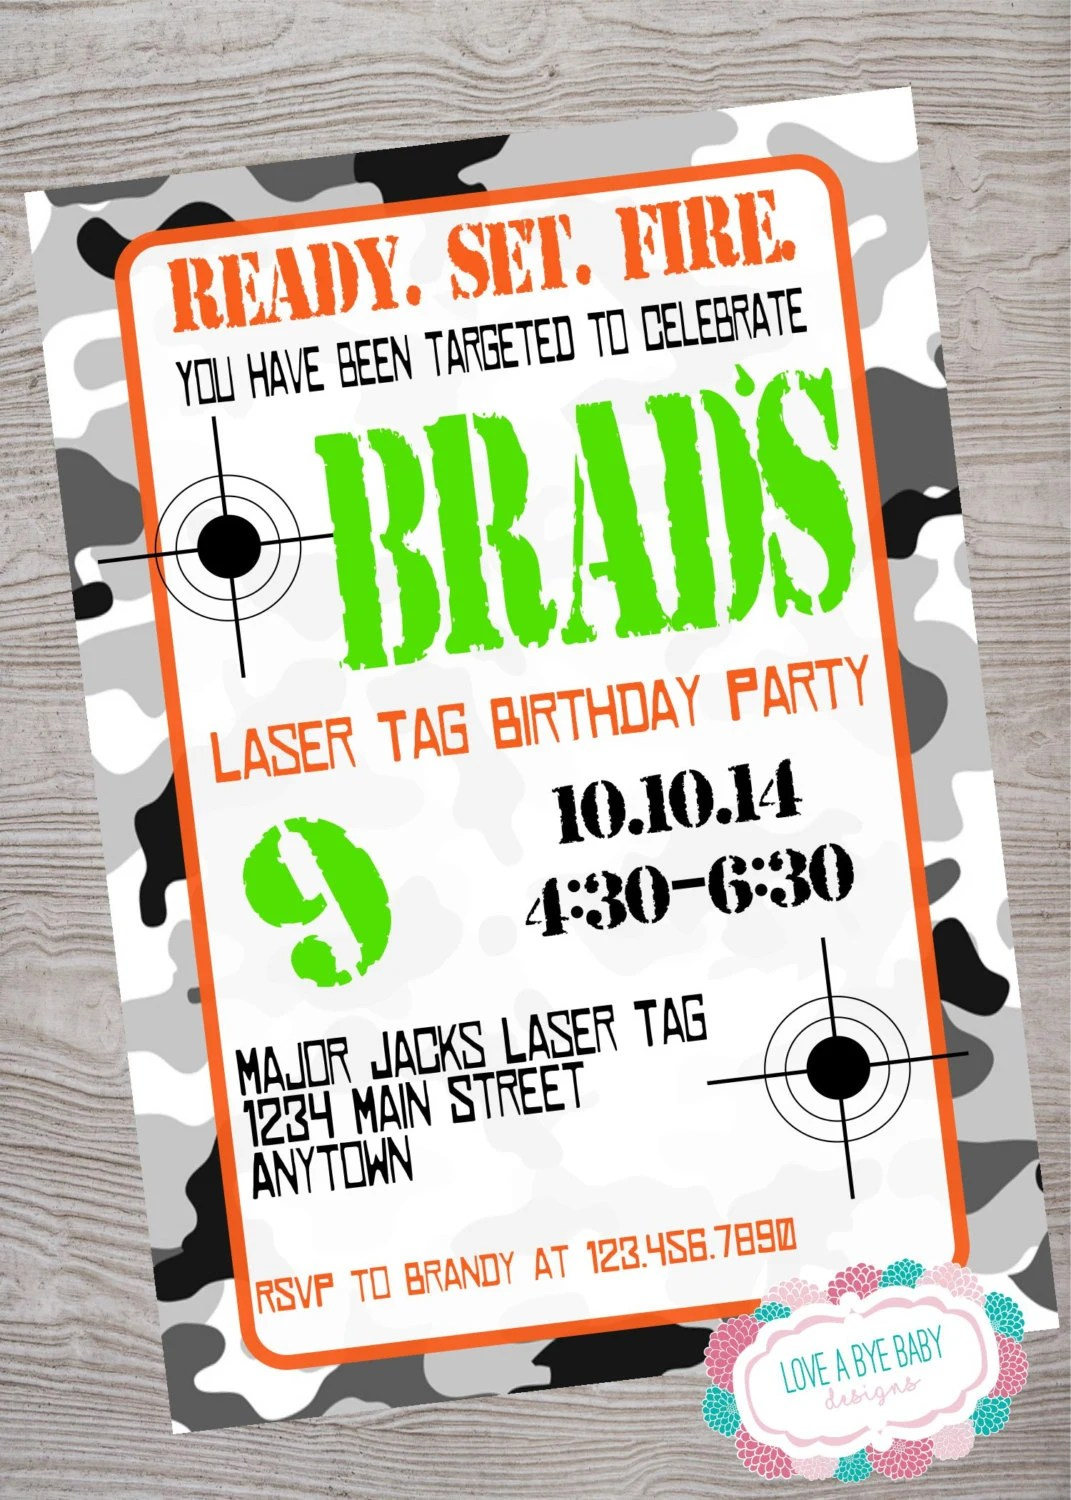 picture regarding Laser Tag Birthday Invitations Free Printable identified as Laser Tag Birthday Invites - Anarchistshemale